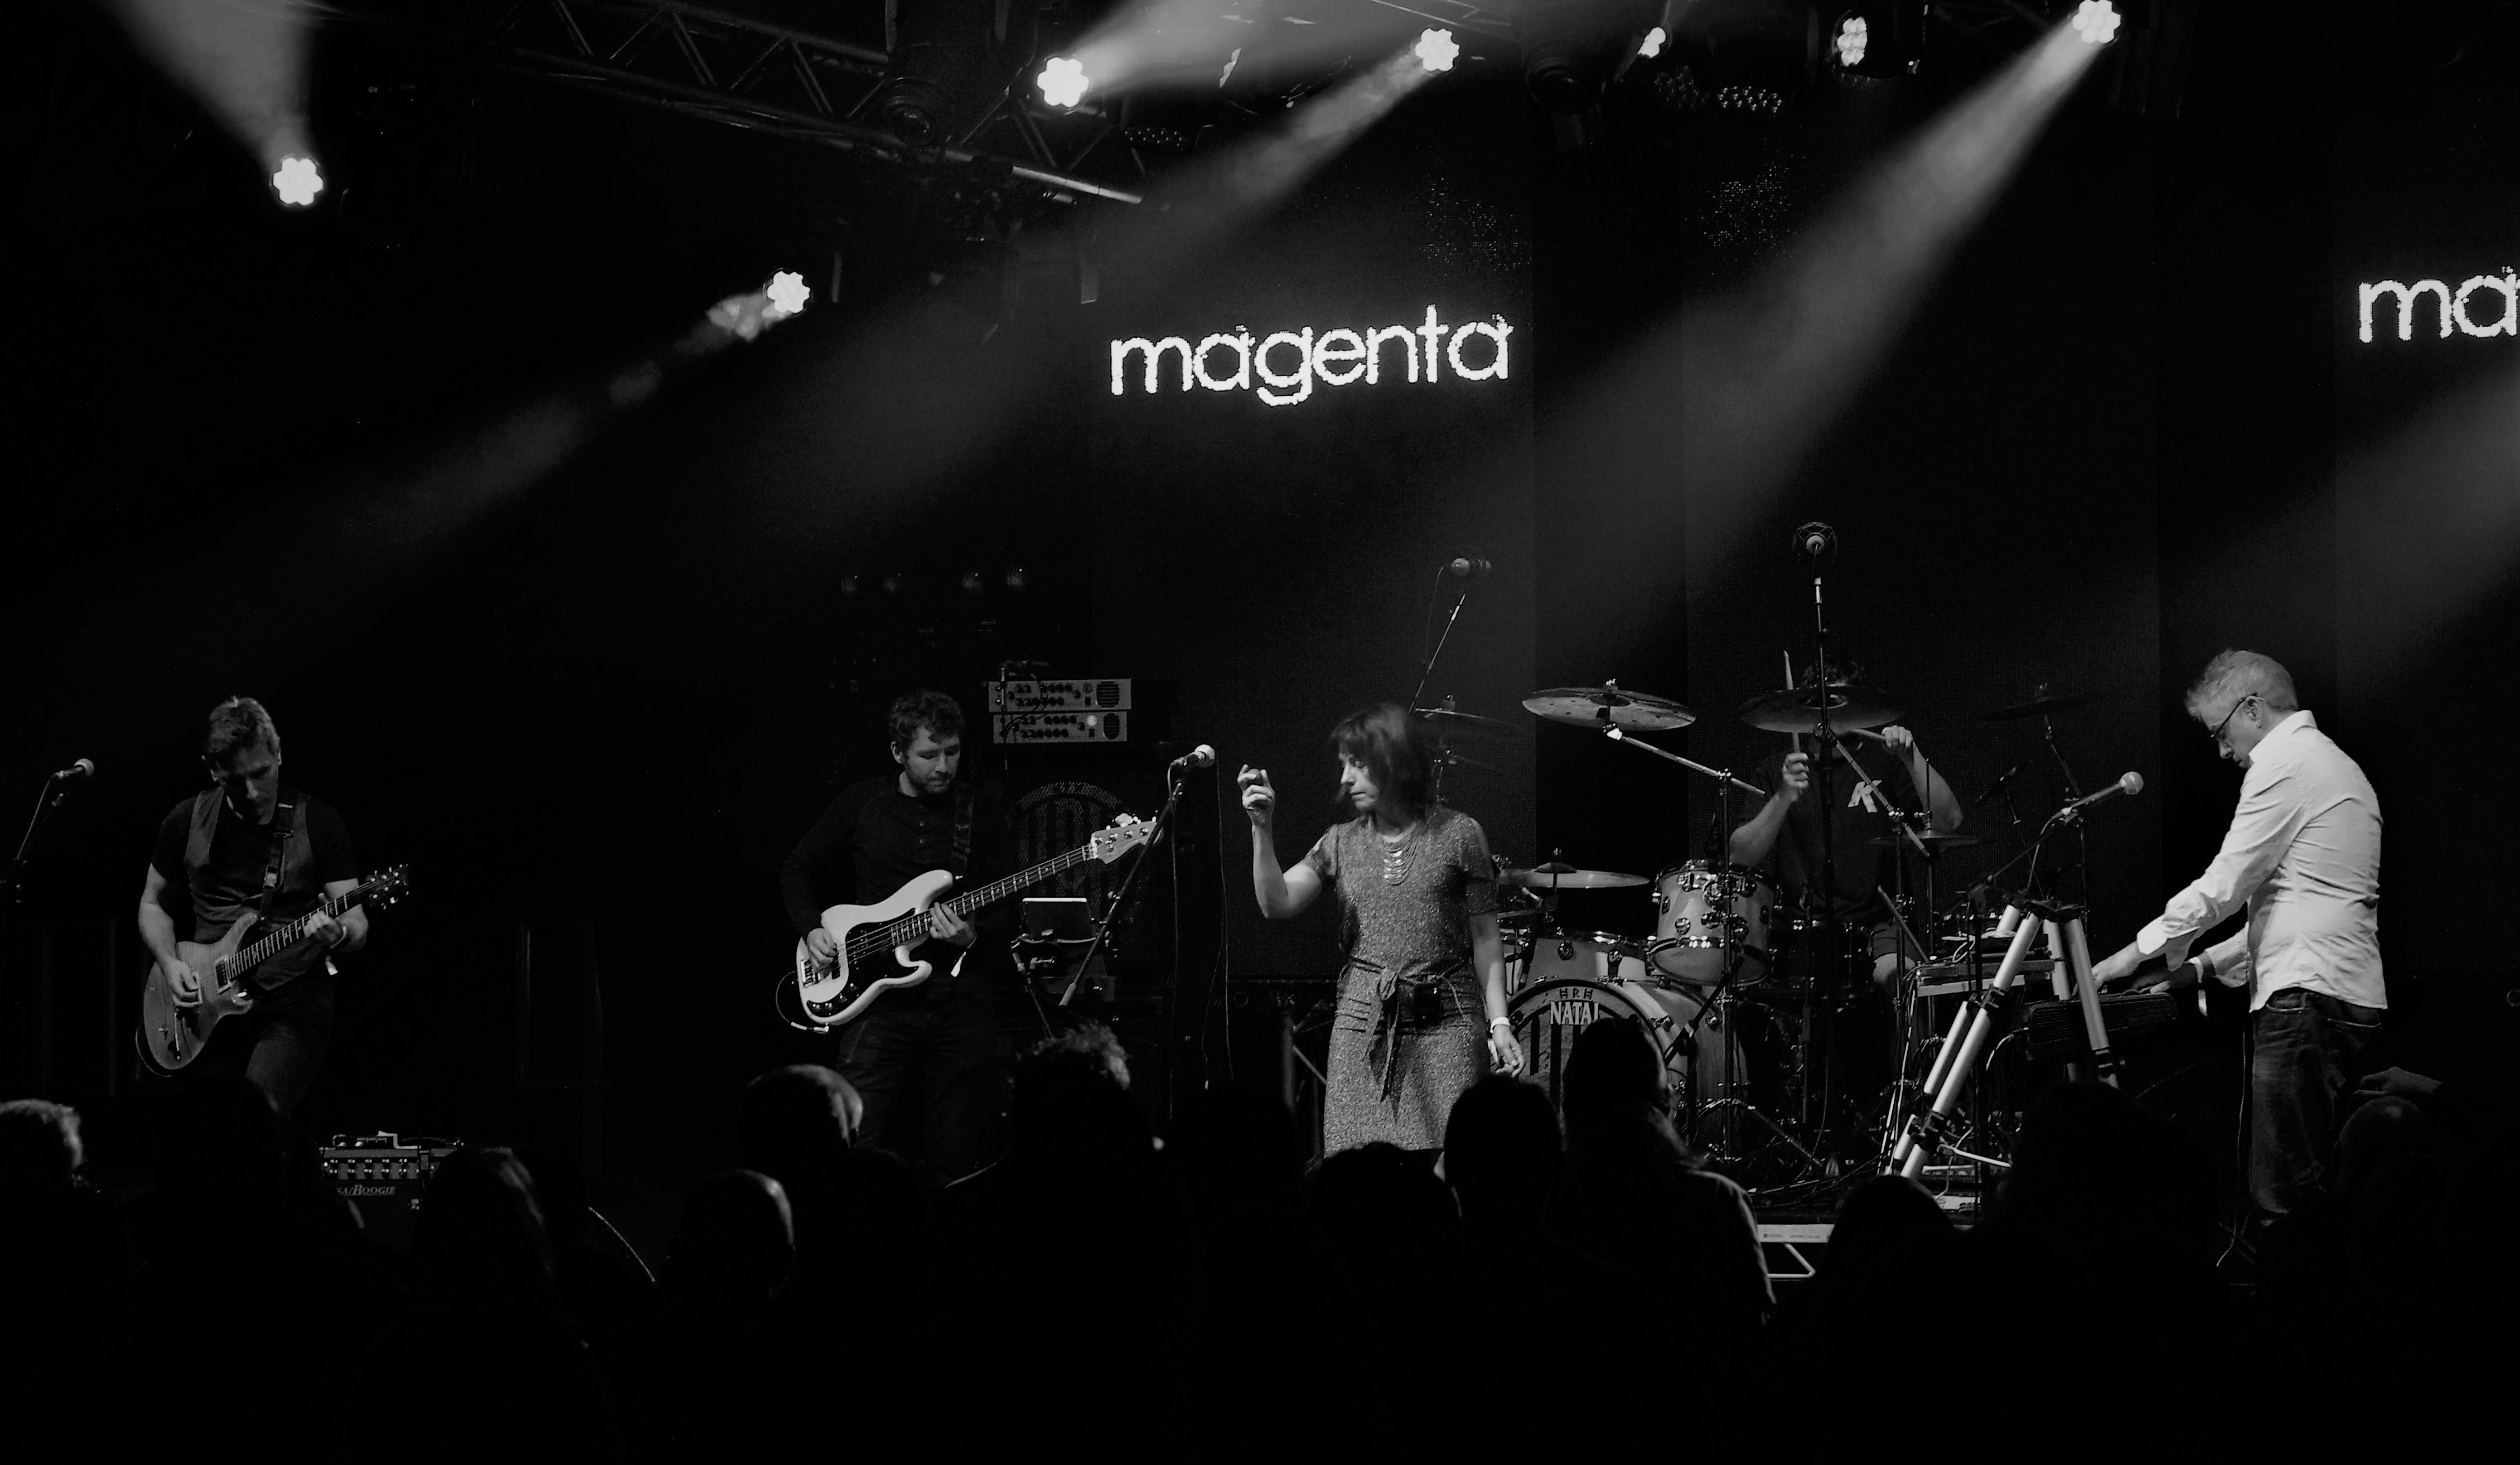 Day 3 - Main Stage_2 - Magenta (10)